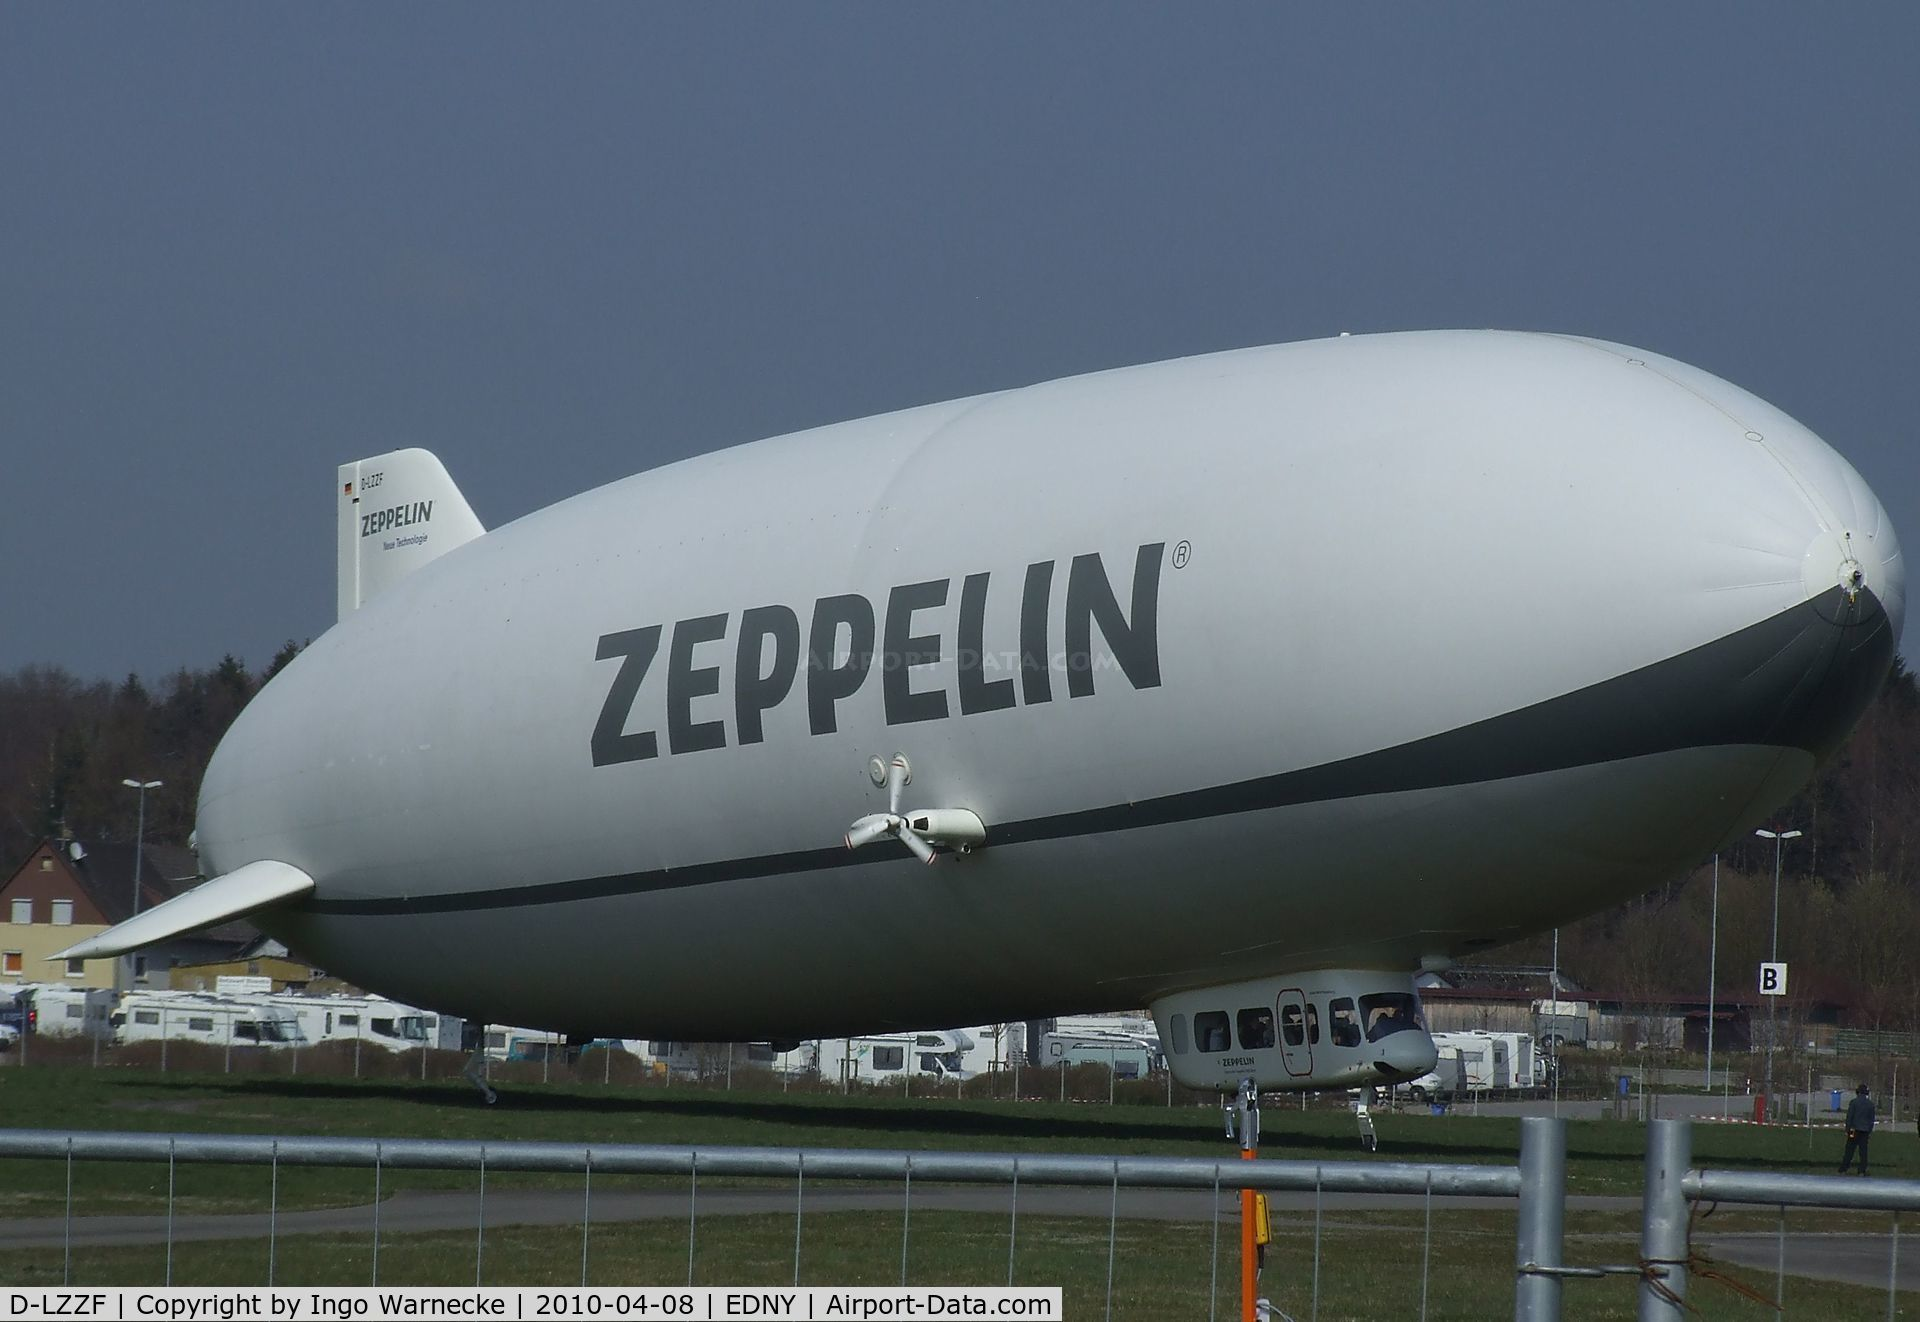 D-LZZF, 1998 Zeppelin LZ-N07 C/N 3, Zeppelin NT LZ-N07 at the AERO 2010, Friedrichshafen